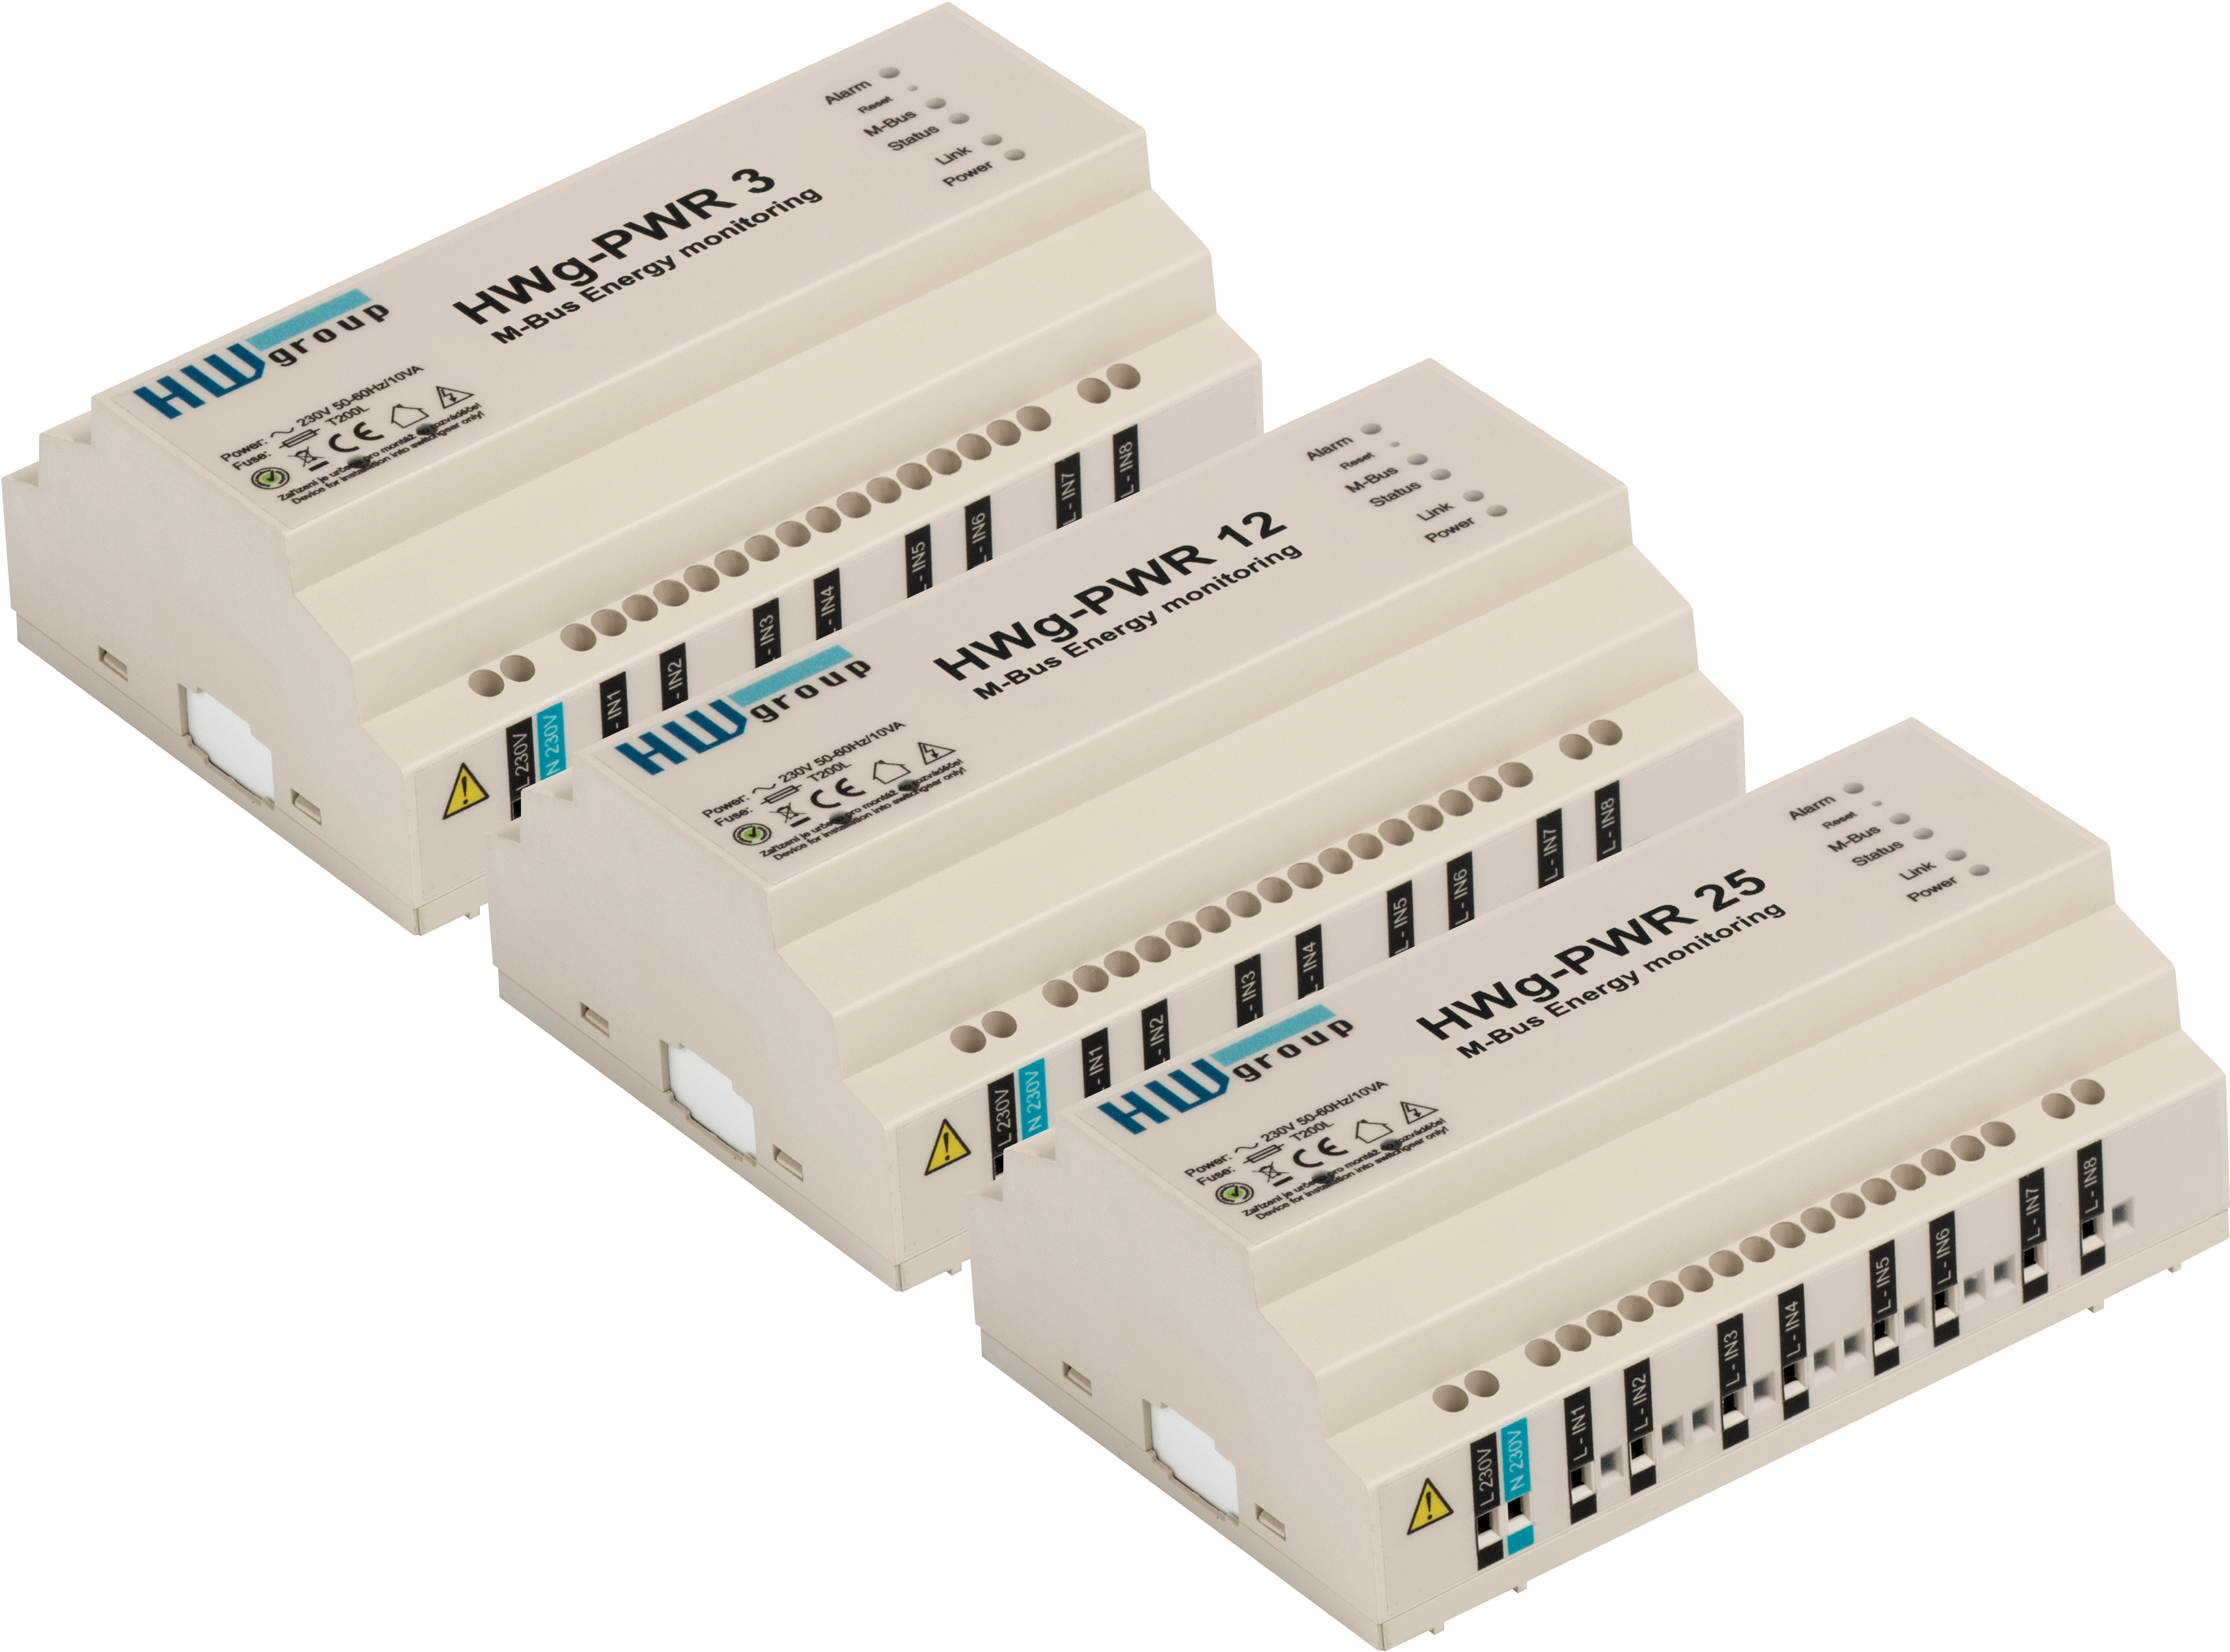 Remote energy monitoring with ABB DELTAMax M-Bus meters | HW